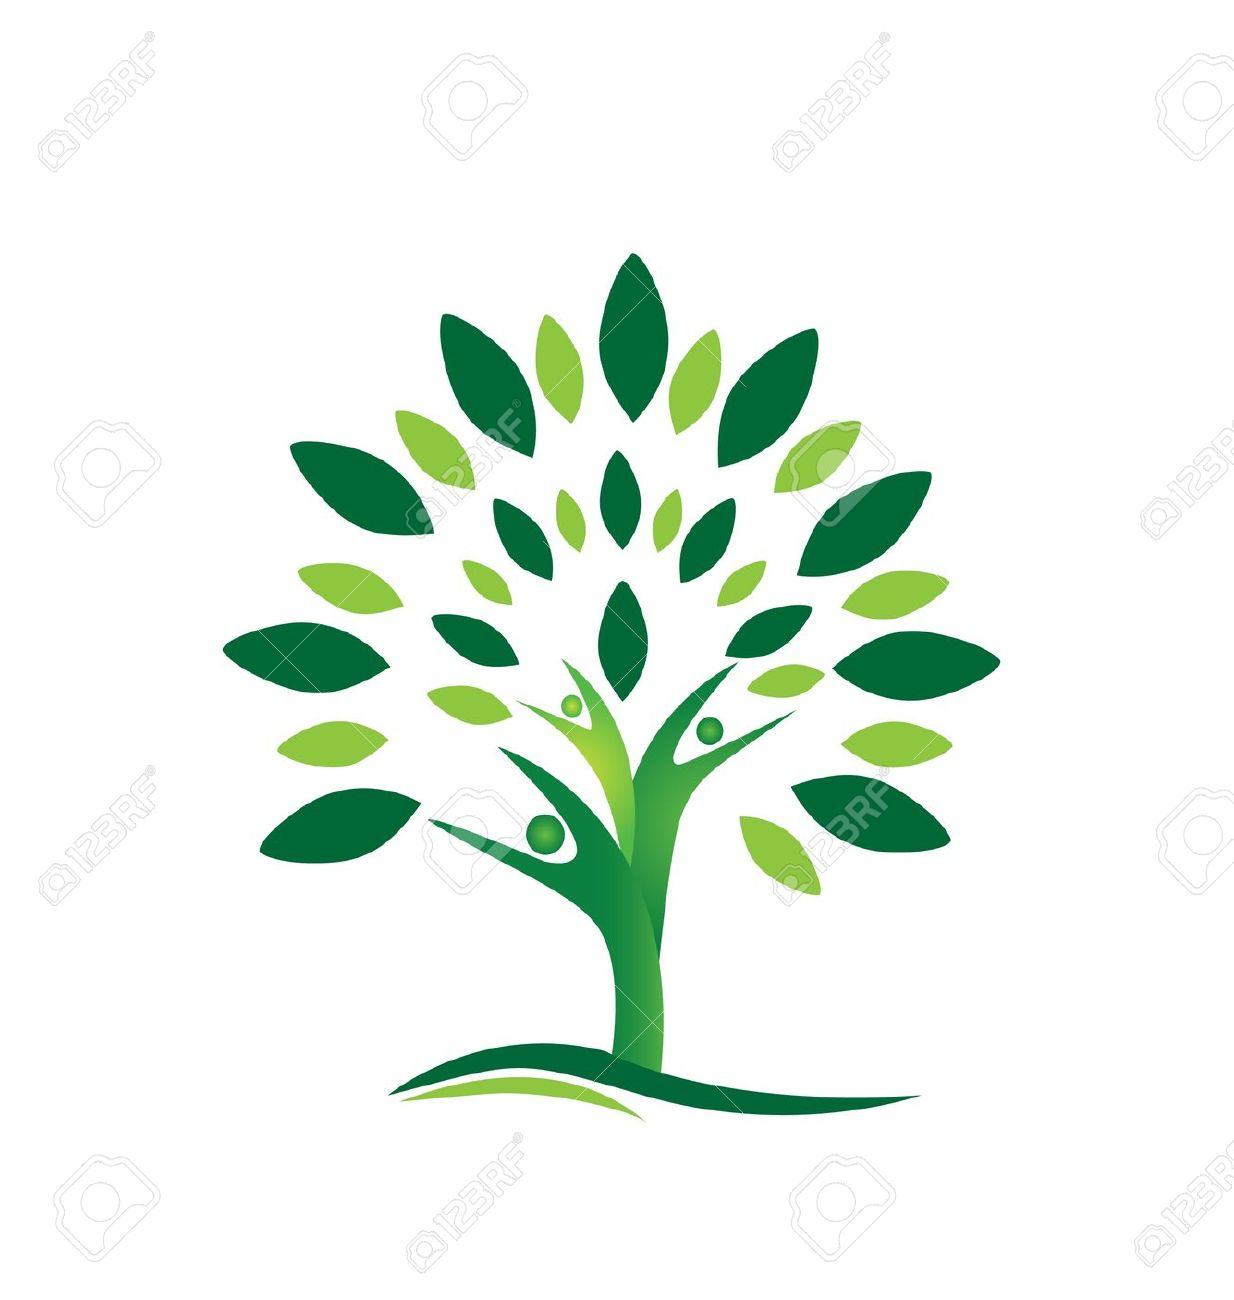 Teamwork People Tree Abstract Icon Background Royalty Free.